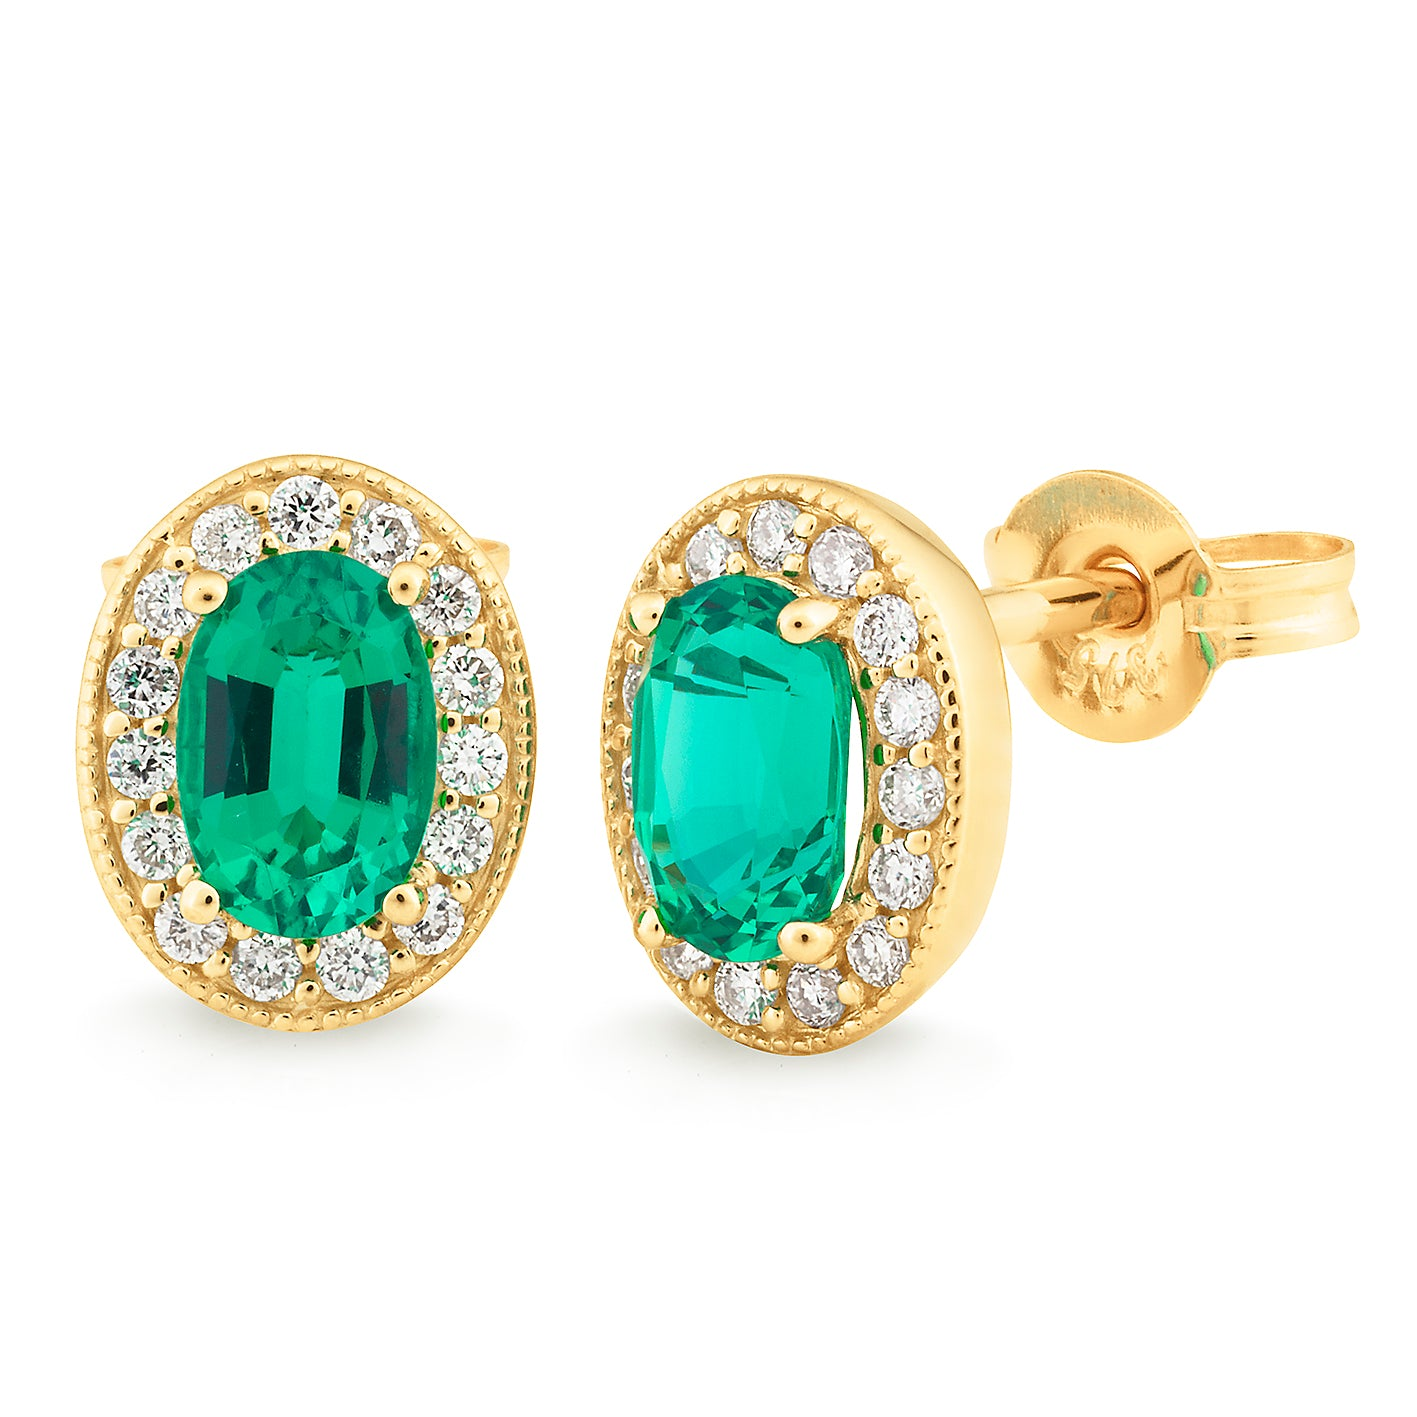 MMJ - Synthetic Emerald & Diamond Stud Earring